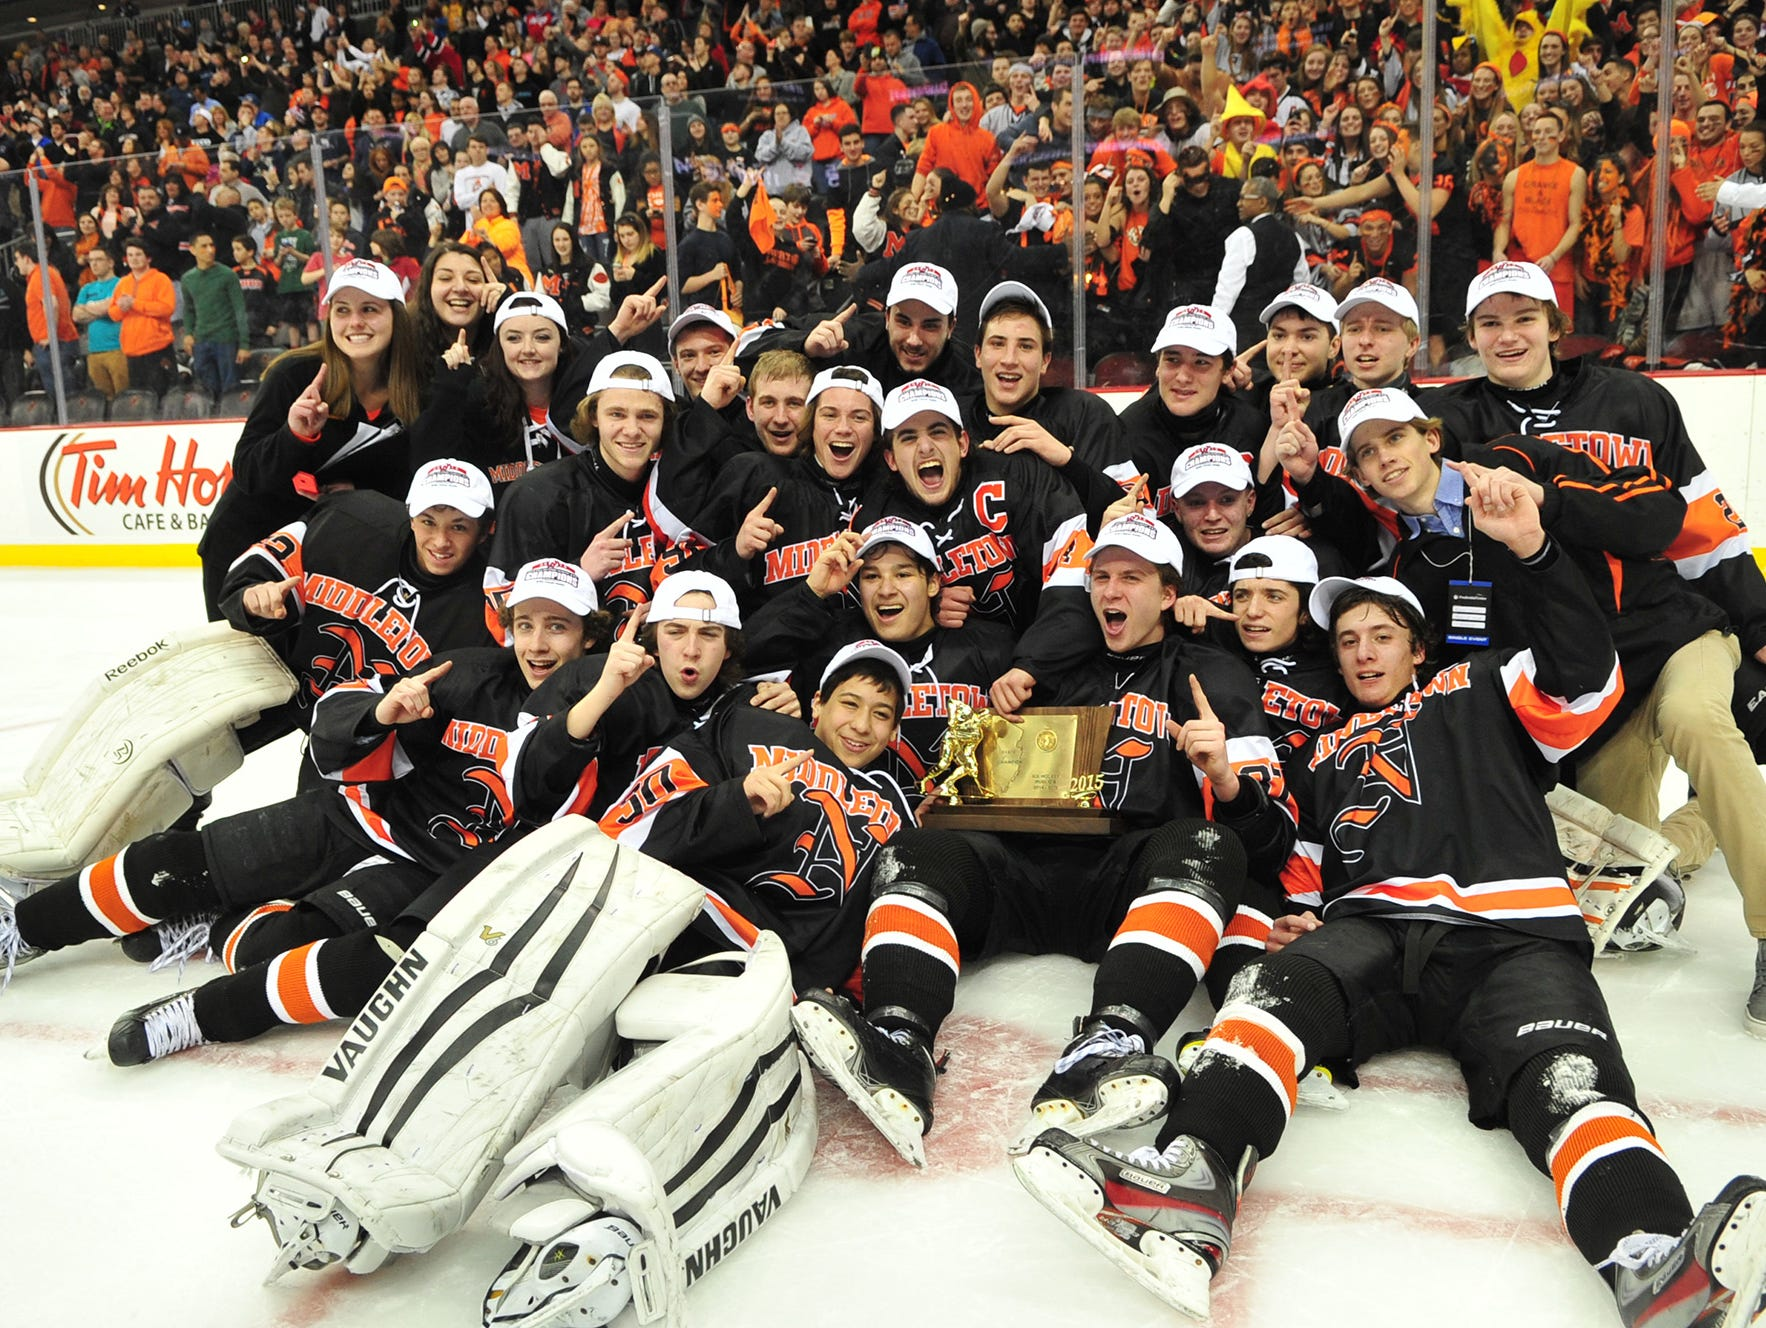 Middletown North players celebrate their win in the NJSIAA Public B final on Monday. Middletown North players celebrate their win. Middletown North wins the Public B state hockey final 5-4 against Ramsey at the Prudential Center.